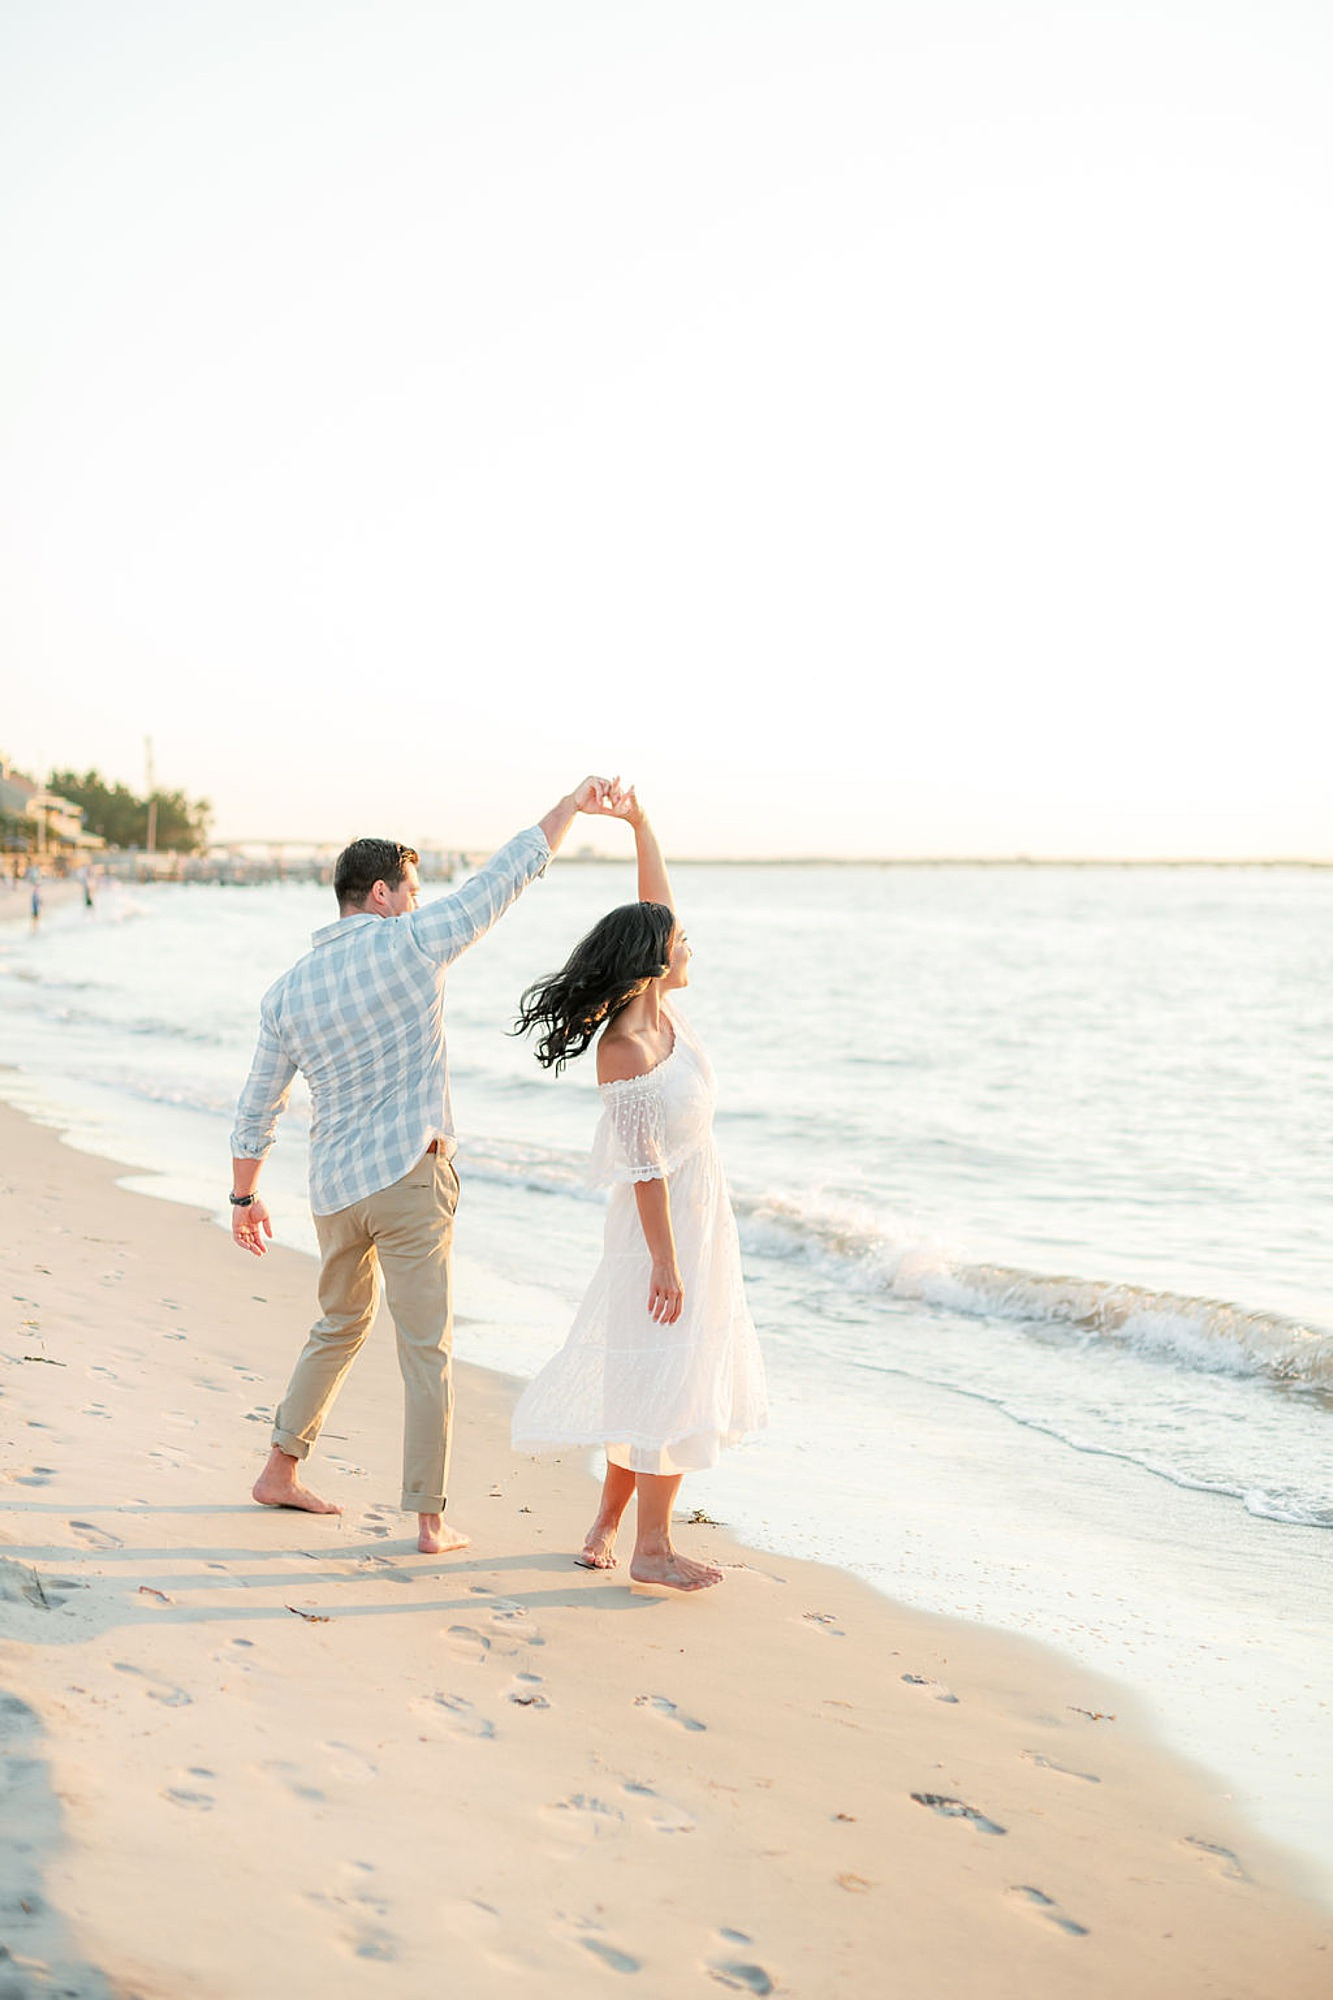 Airy and Bright Engagement Photography in Ocean City NJ by Magdalena Studios 0037